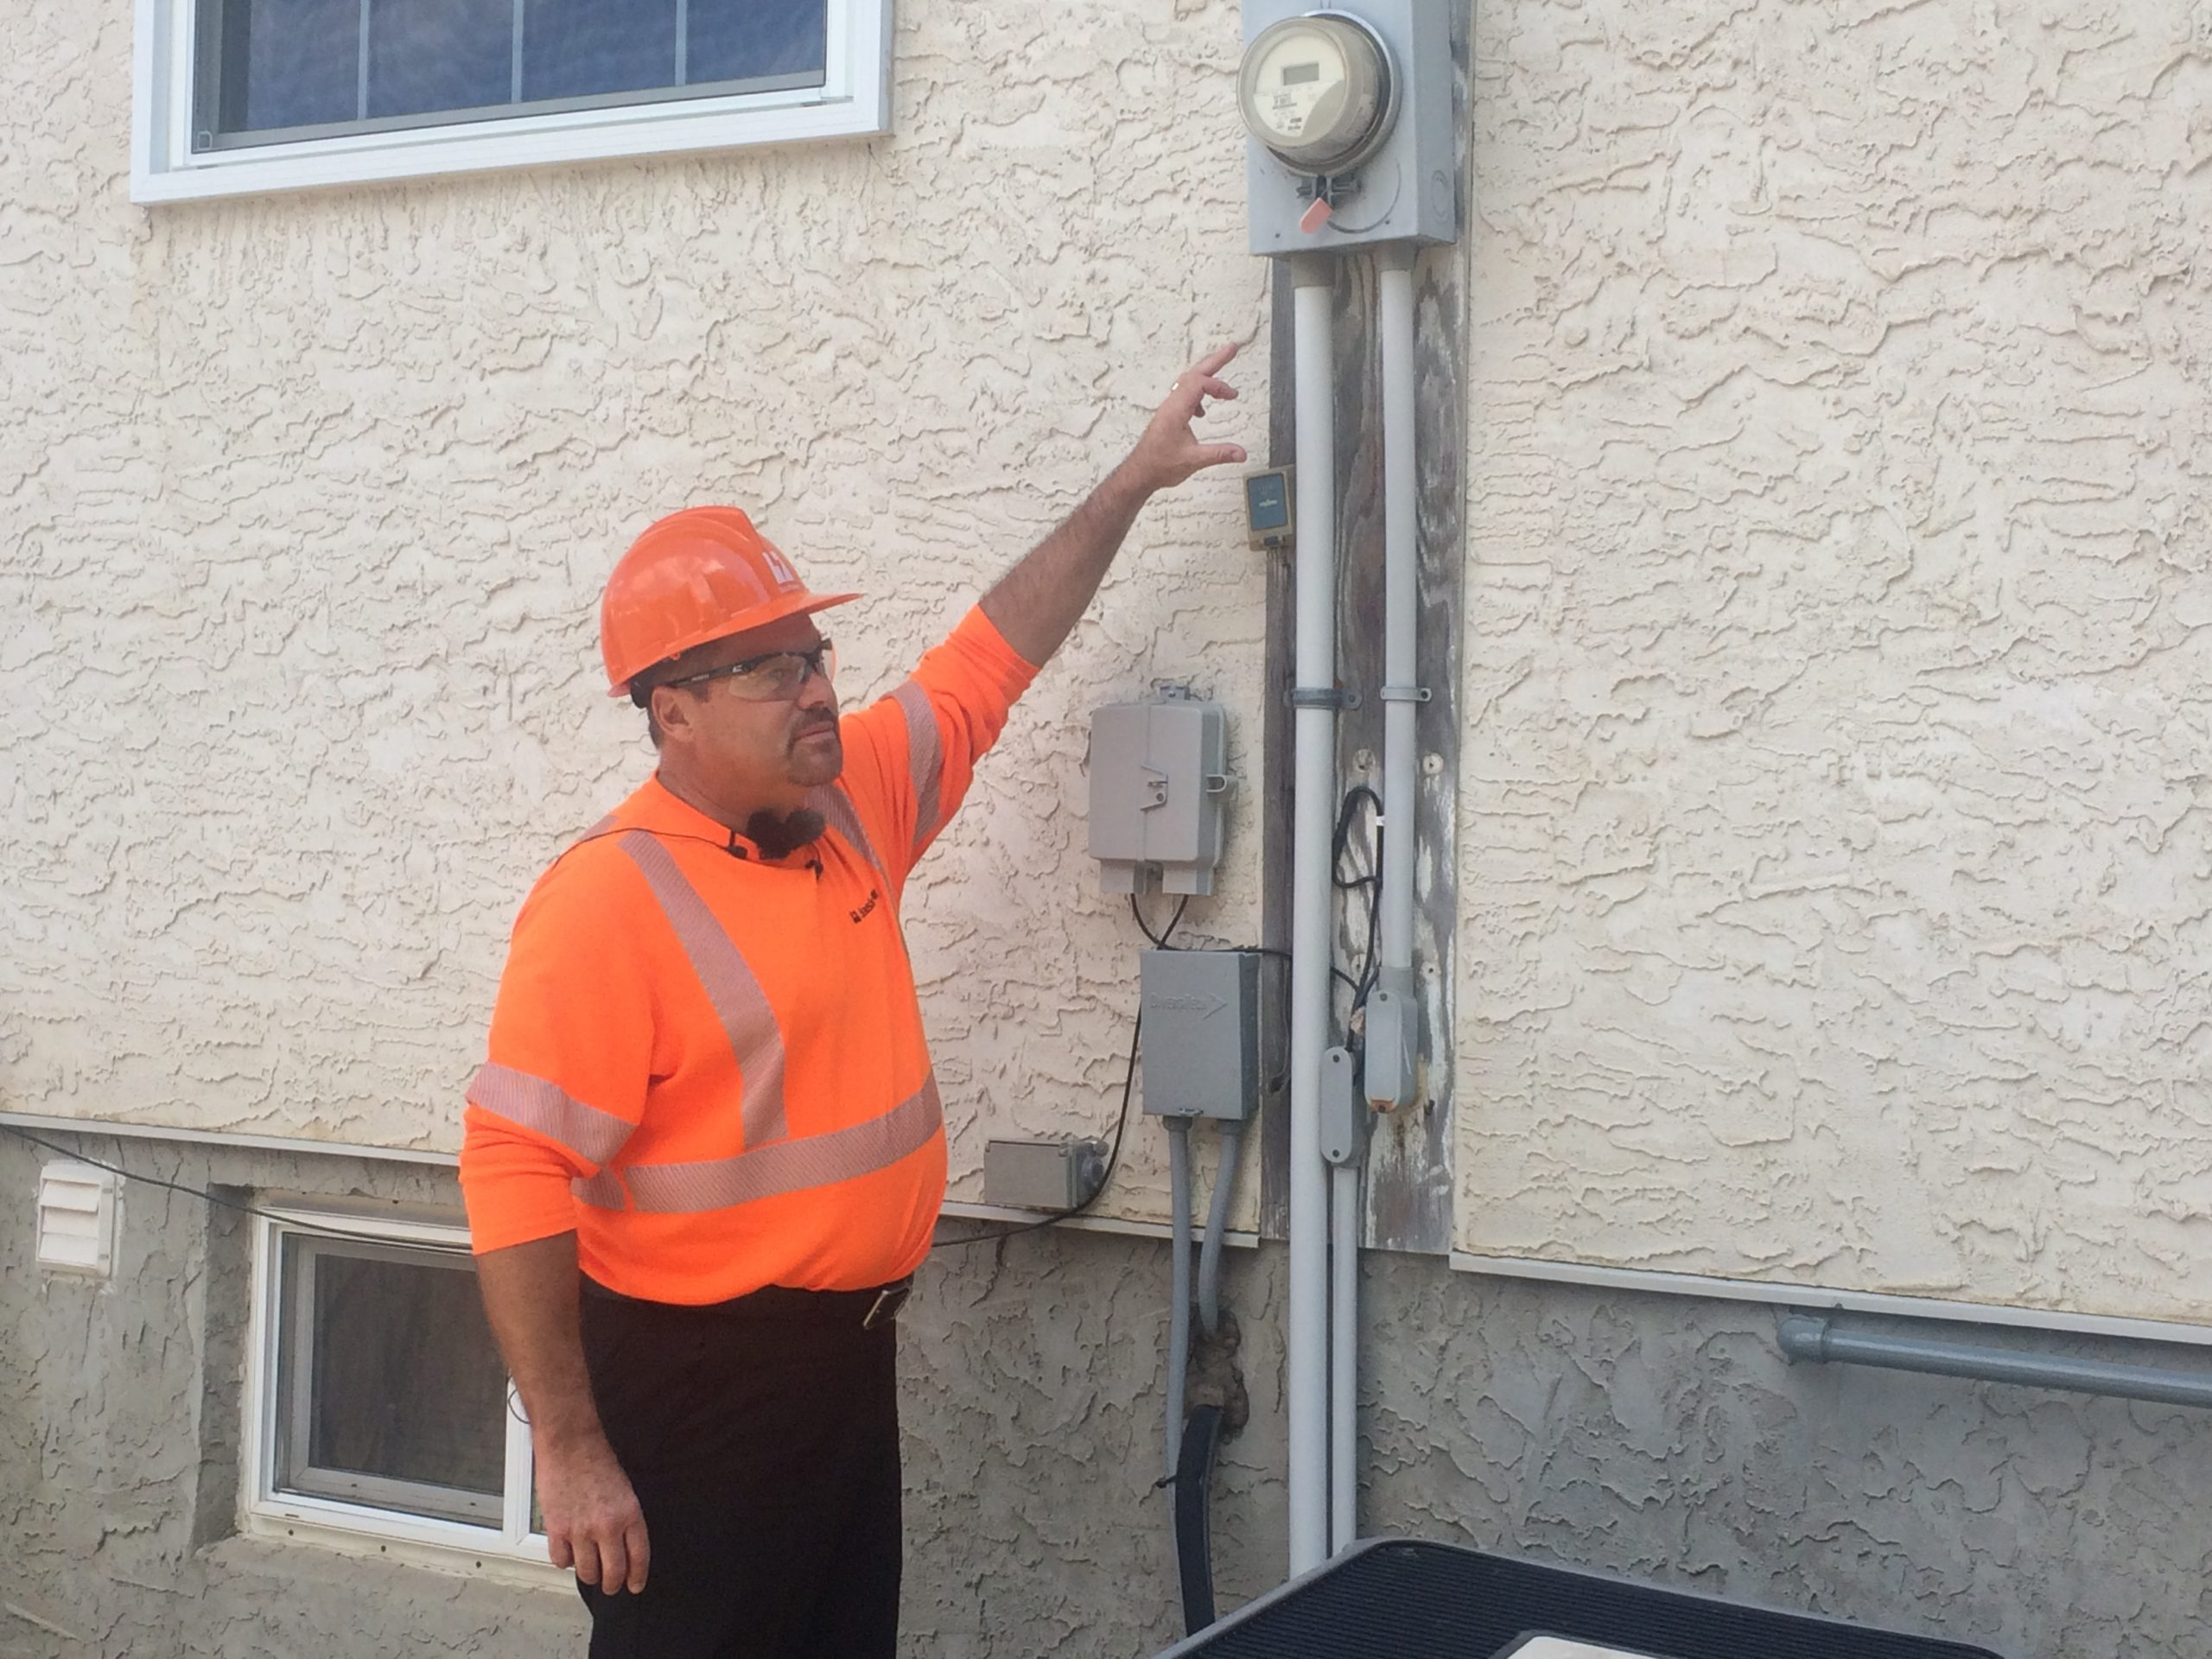 SaskPower asks residents to remain diligent when watching for ground shifting